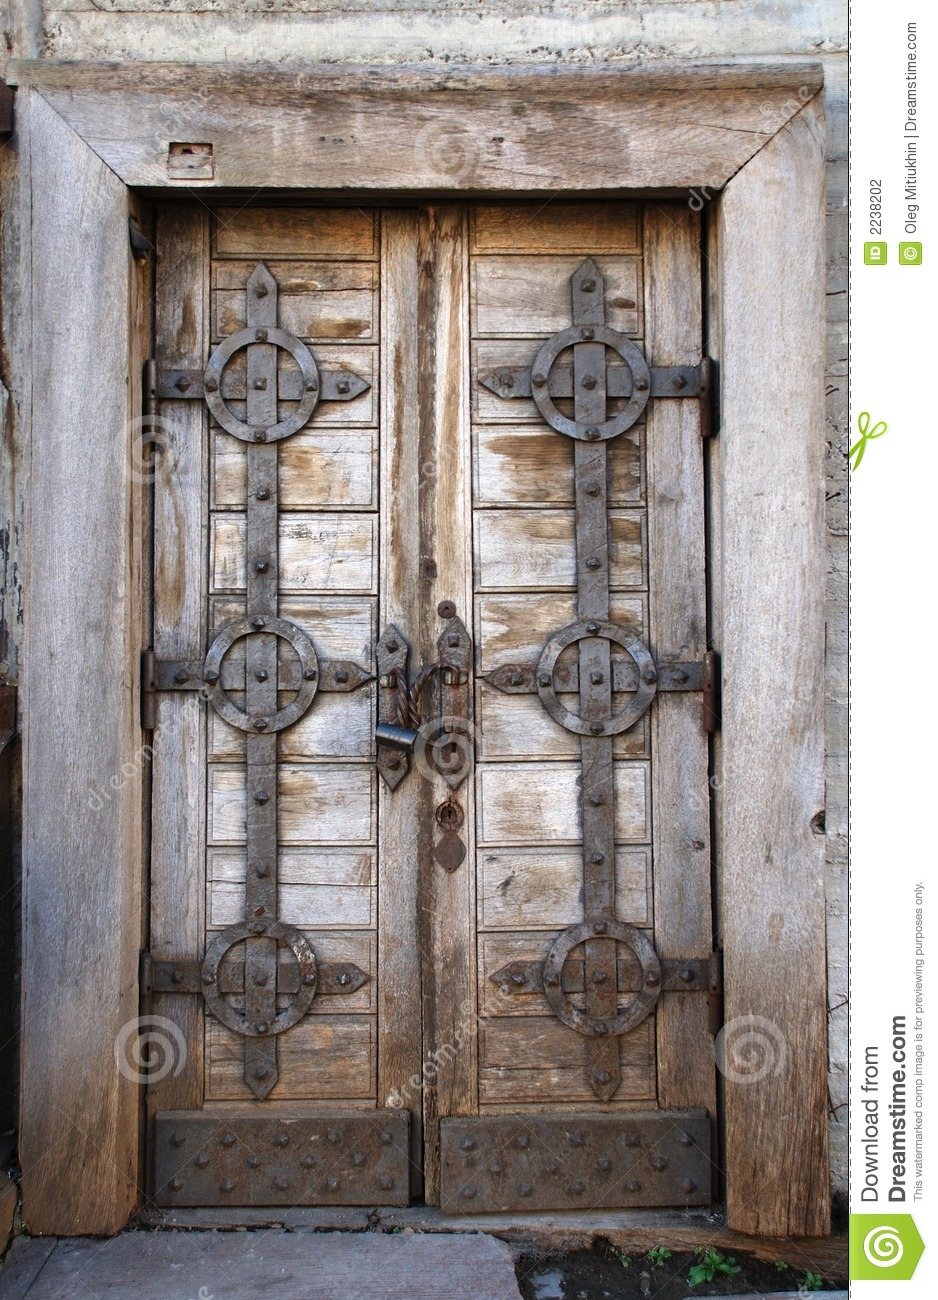 Old fashion door with lock stock photography image 2238202 - Old fashioned interior door locks ...